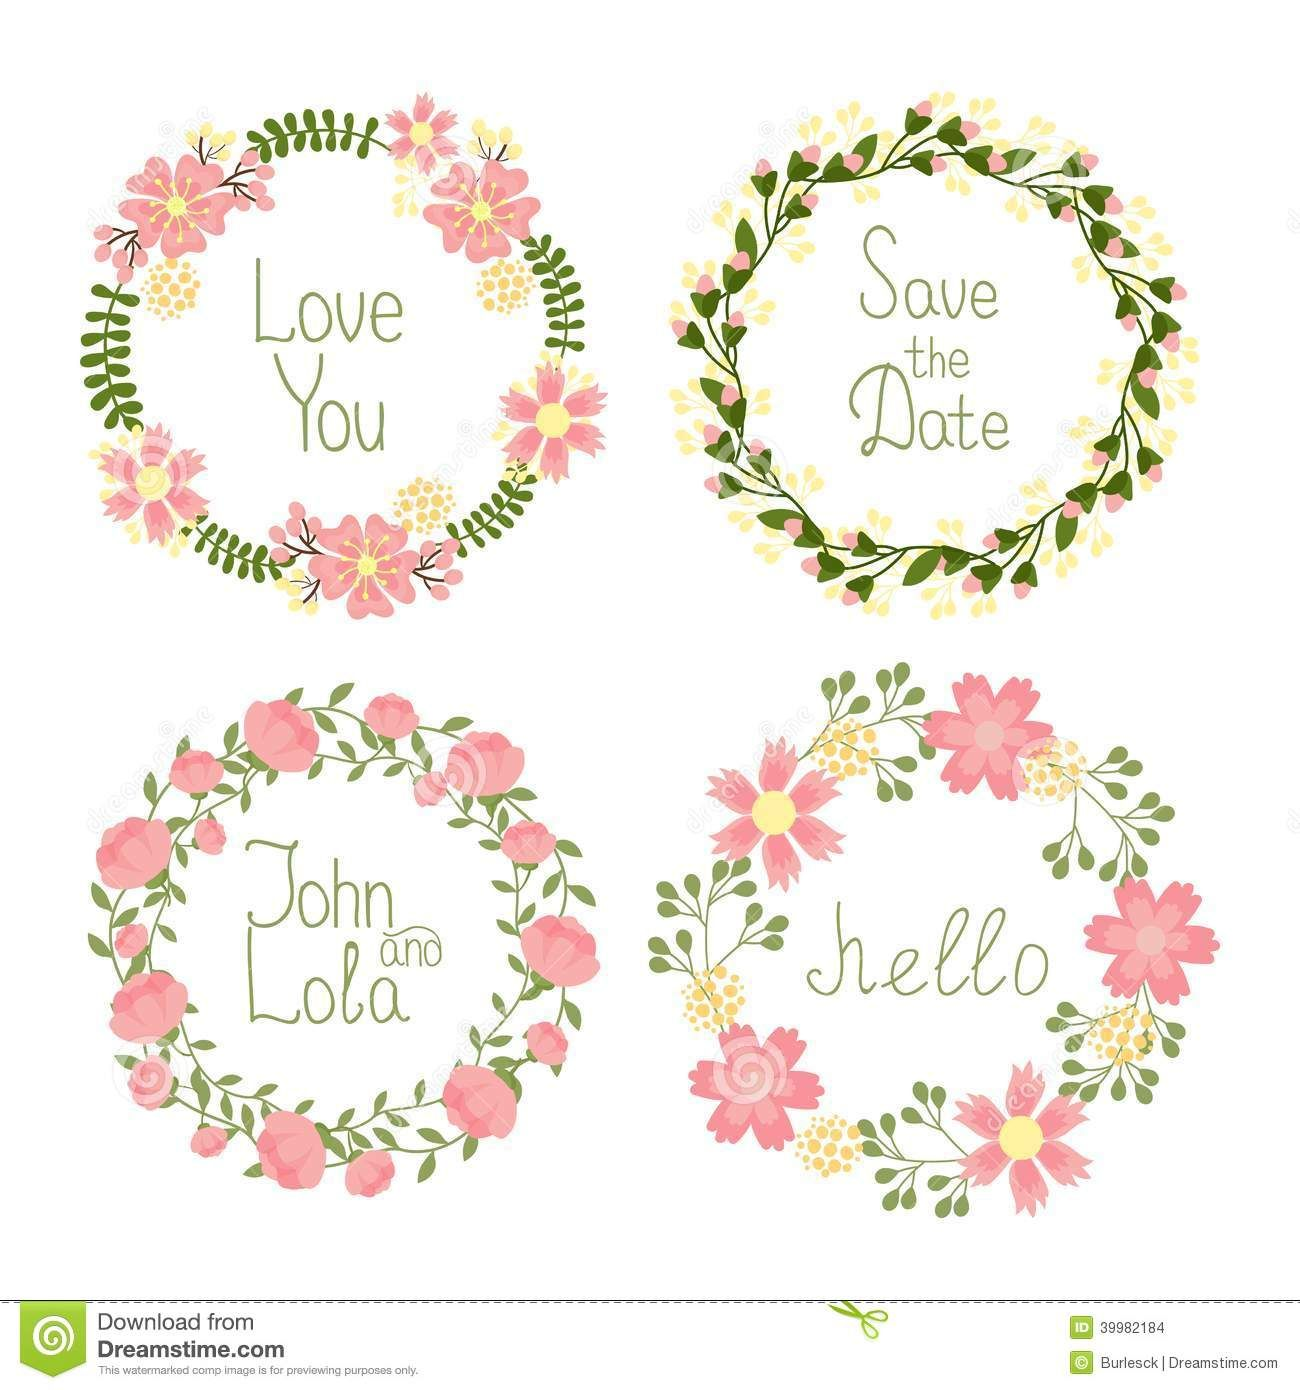 Buy Floral Frame By On GraphicRiver Vector Wreaths Set For Wedding Invitations And Birthday Cards Editable EPS Render In JPG Format